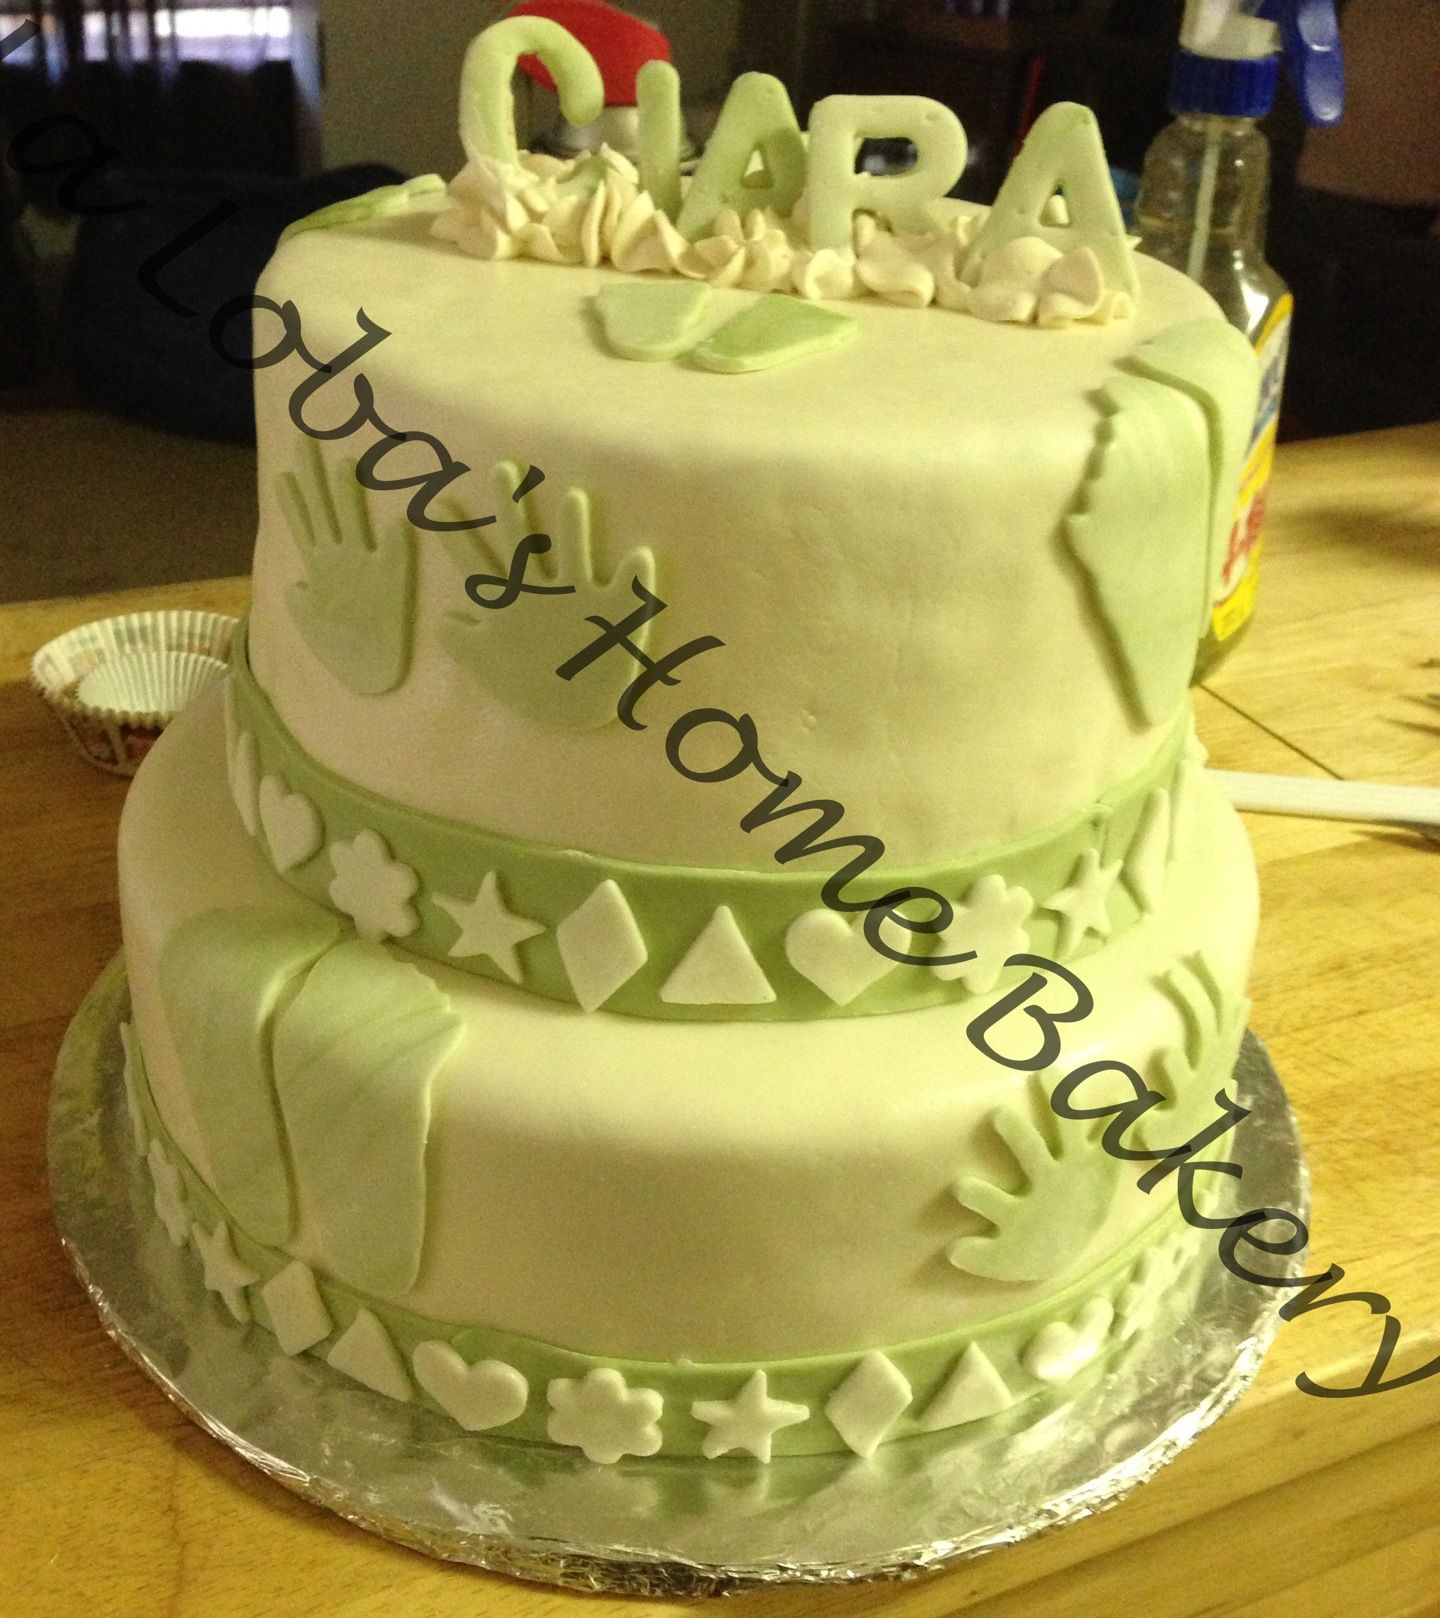 Vanilla cinnamon cake with caramel buttercream filling. Cake is covered in fondant.